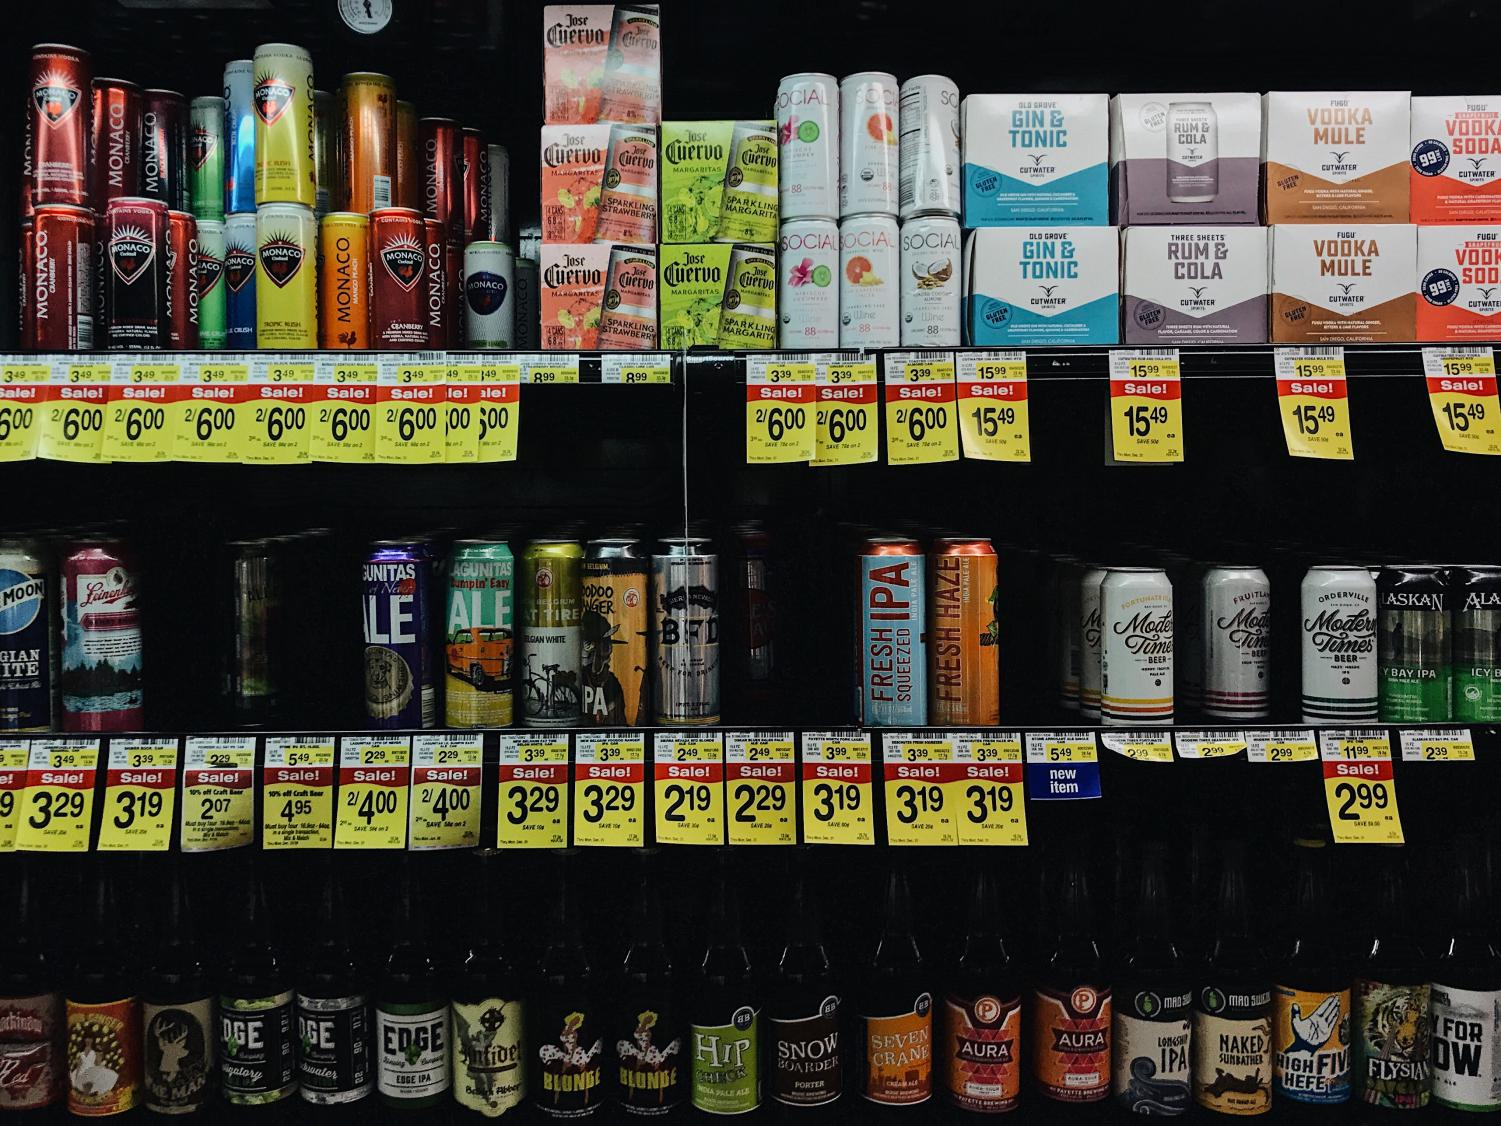 Alcoholic beverages at the local Albertsons that you might find around the Boise High party scene.